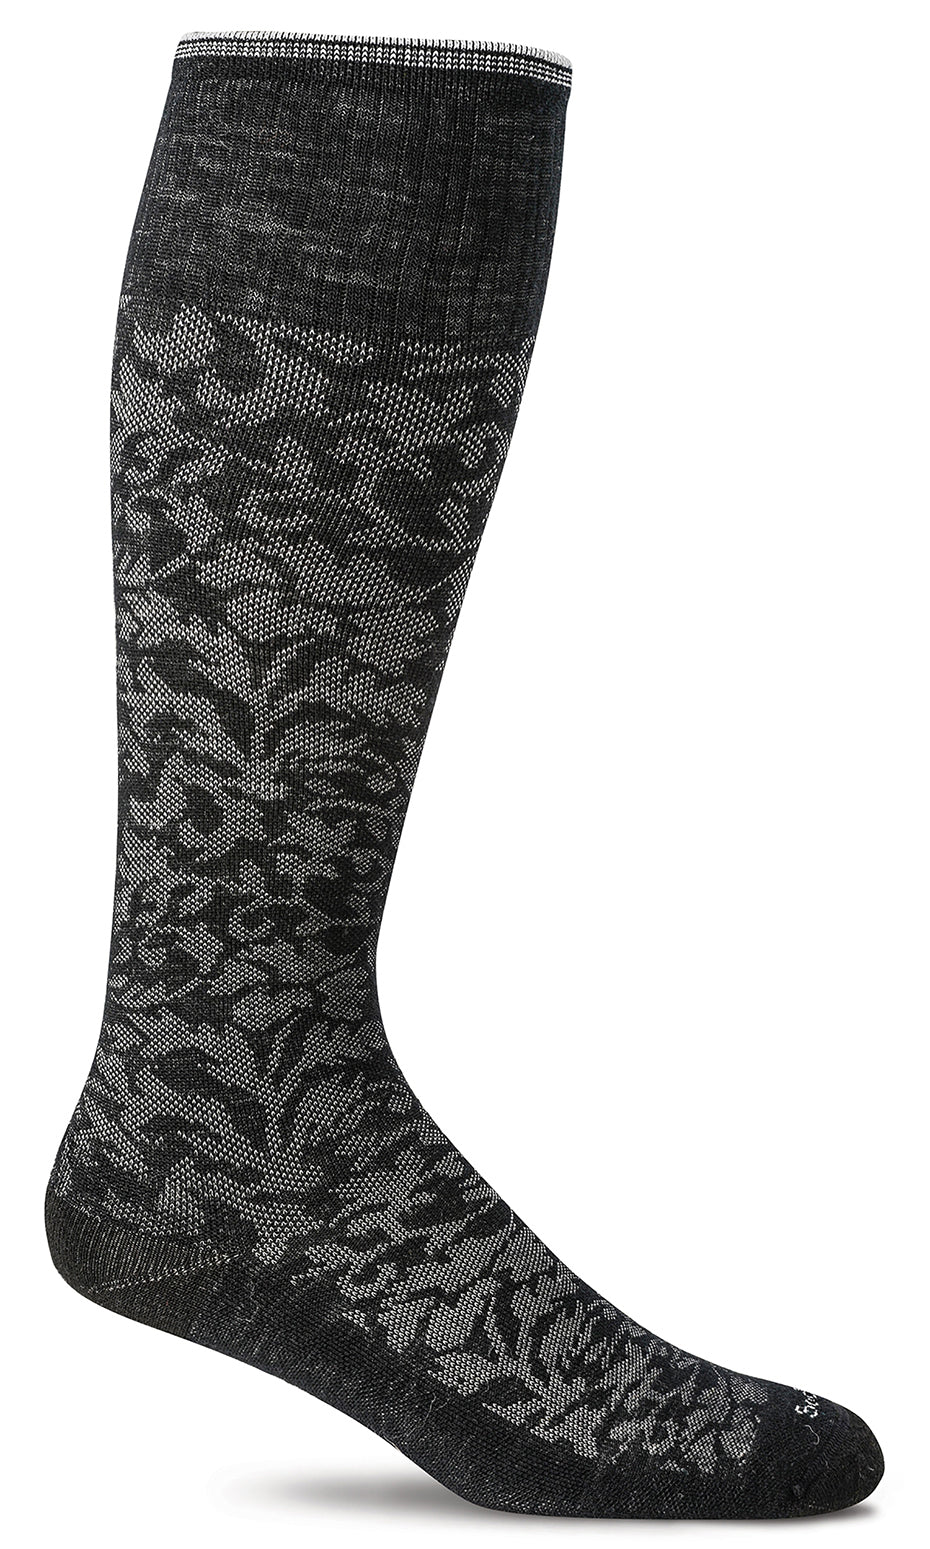 Damask Knee-High- Black Moderate Compression (15-20mmHg)